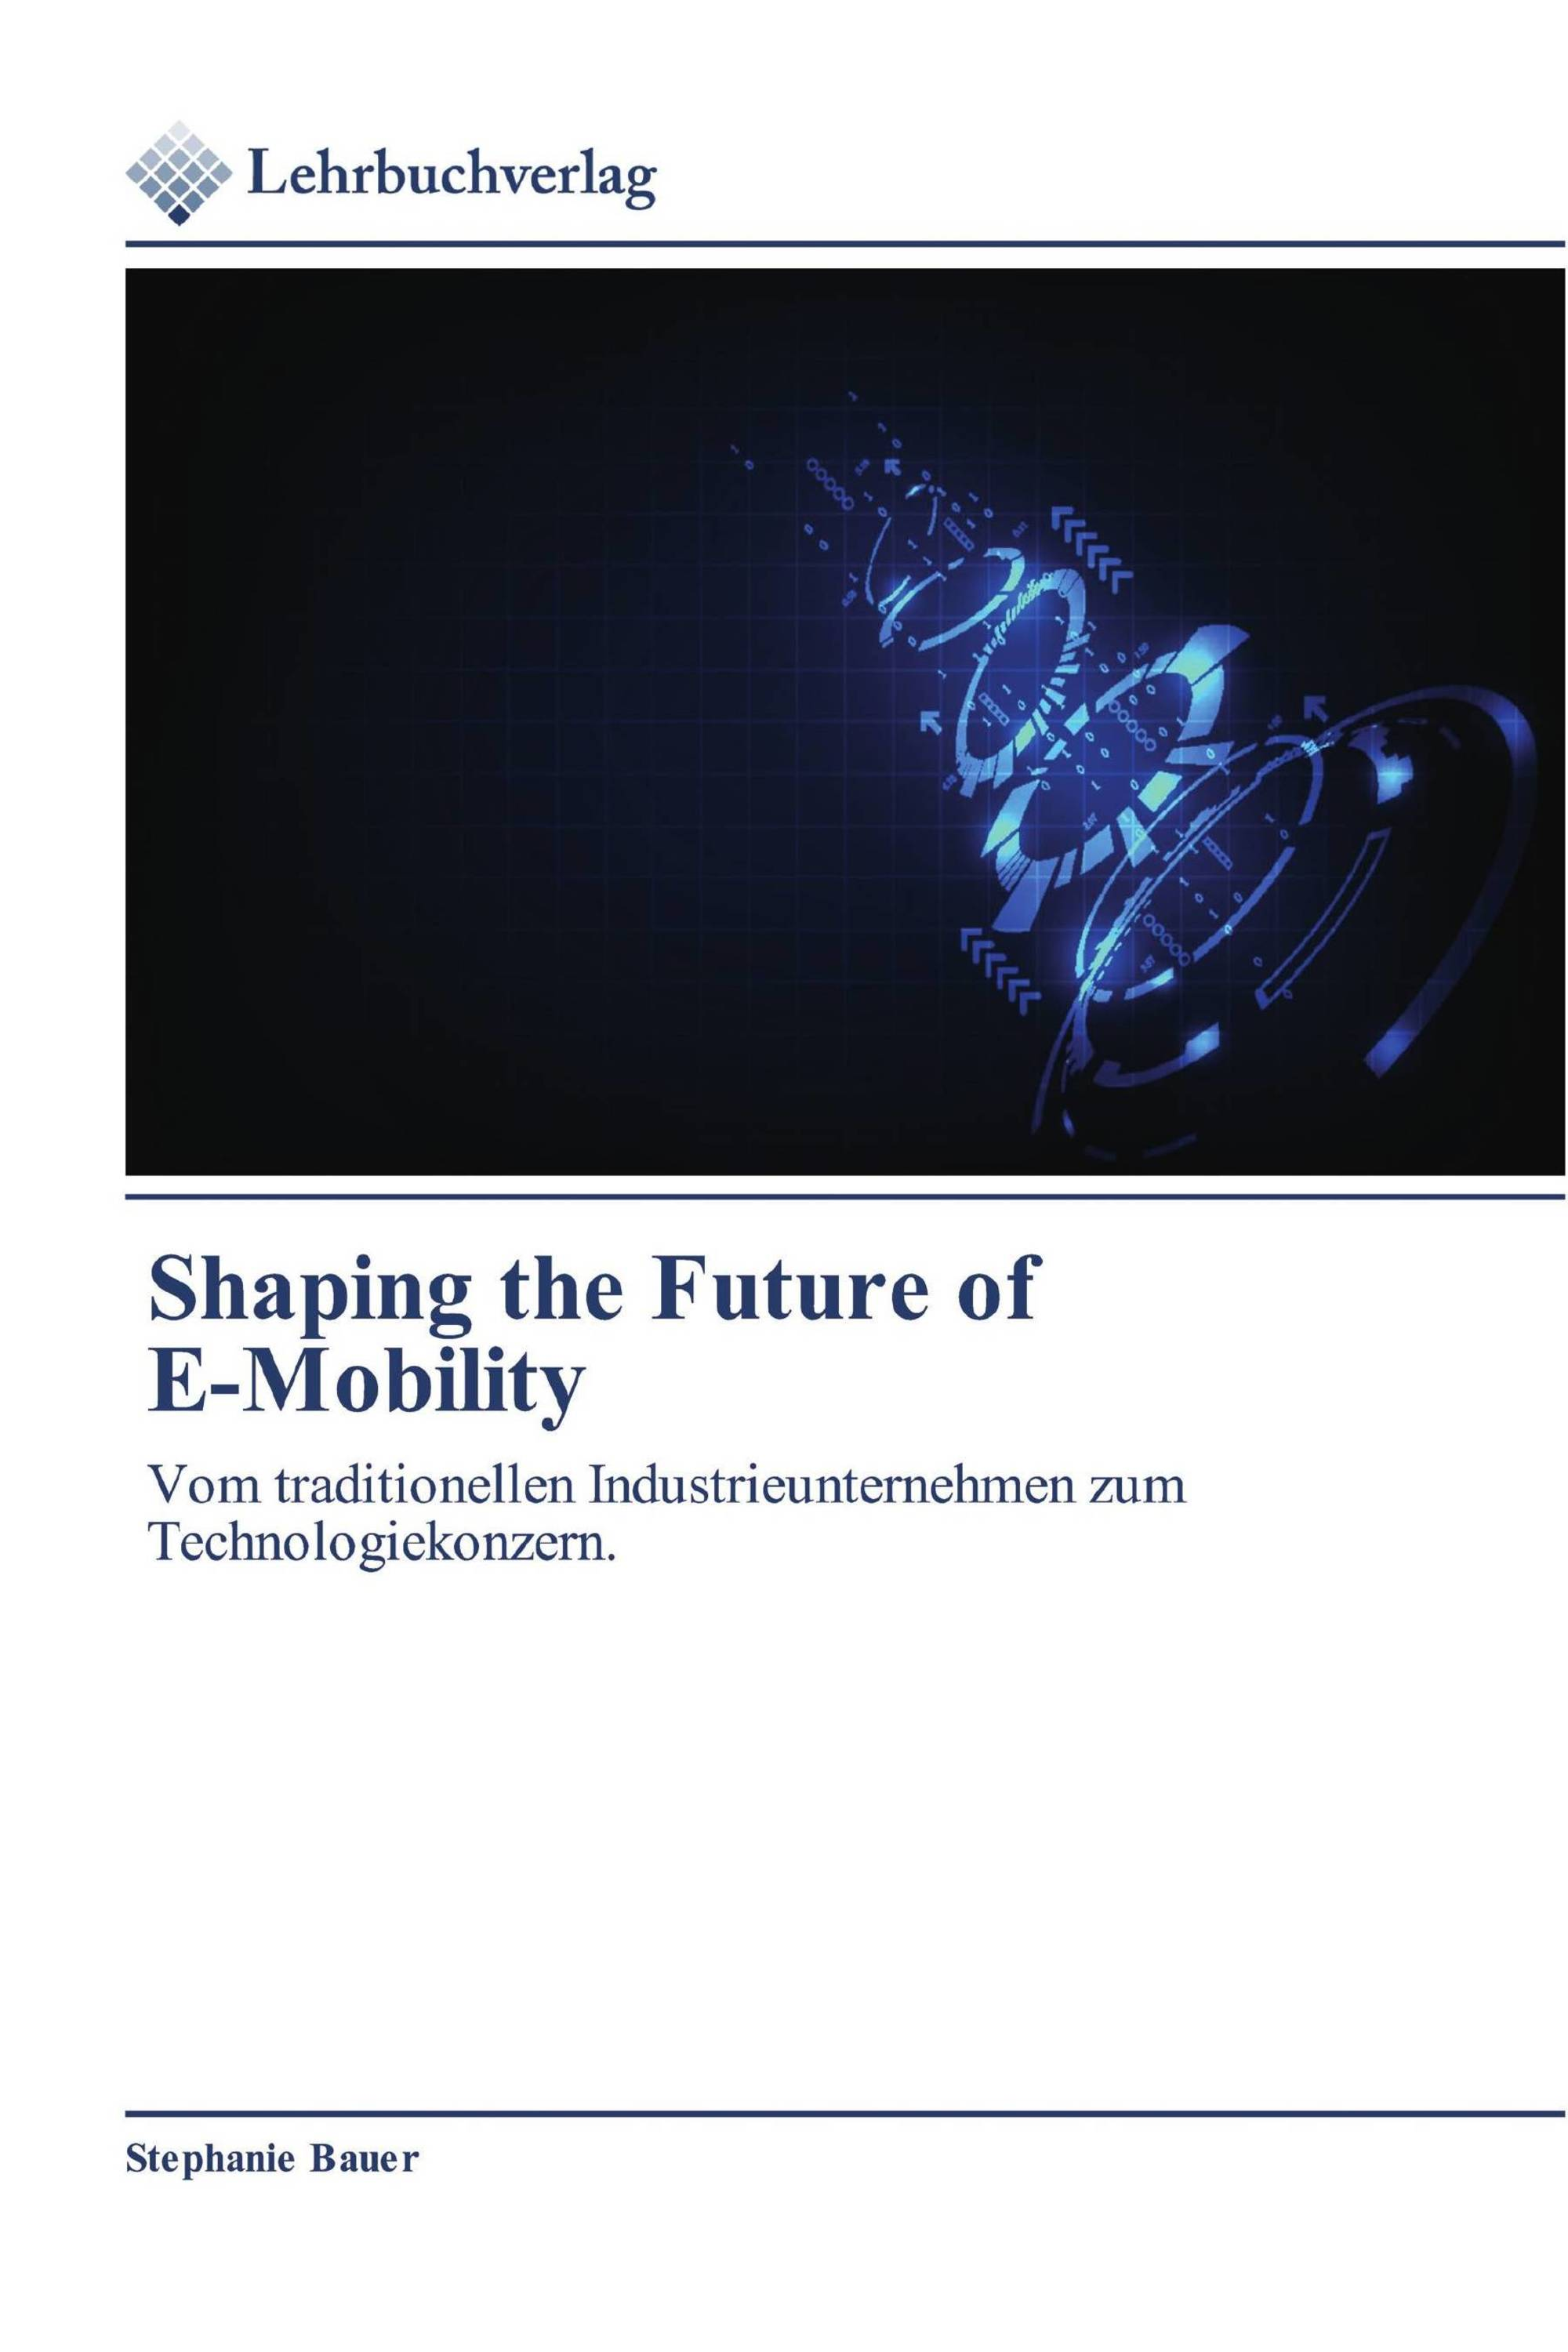 Shaping the Future of E-Mobility